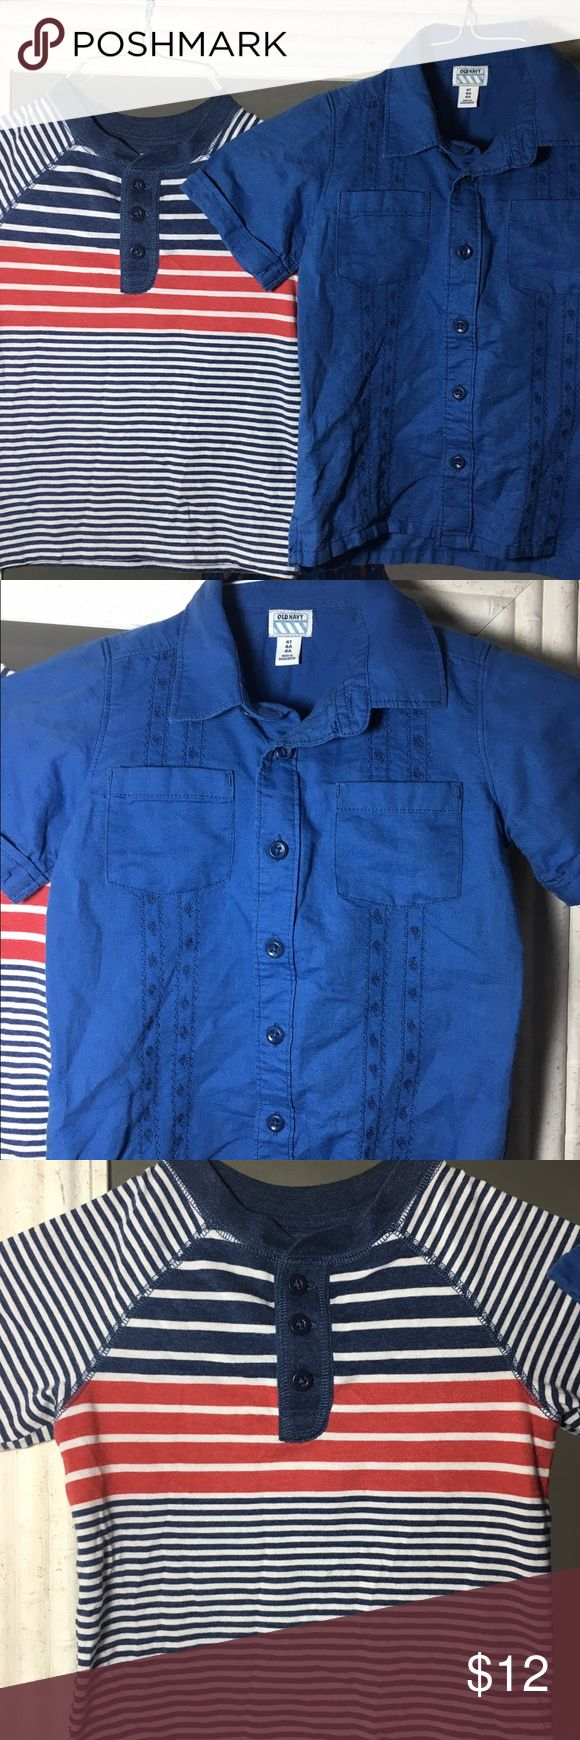 Bundle of two Old Navy shirts EUC EUC. 1 stripes knit shirt with buttons at neck. 1 button down embroidered navy shirt. Both size 4T. Shirts & Tops